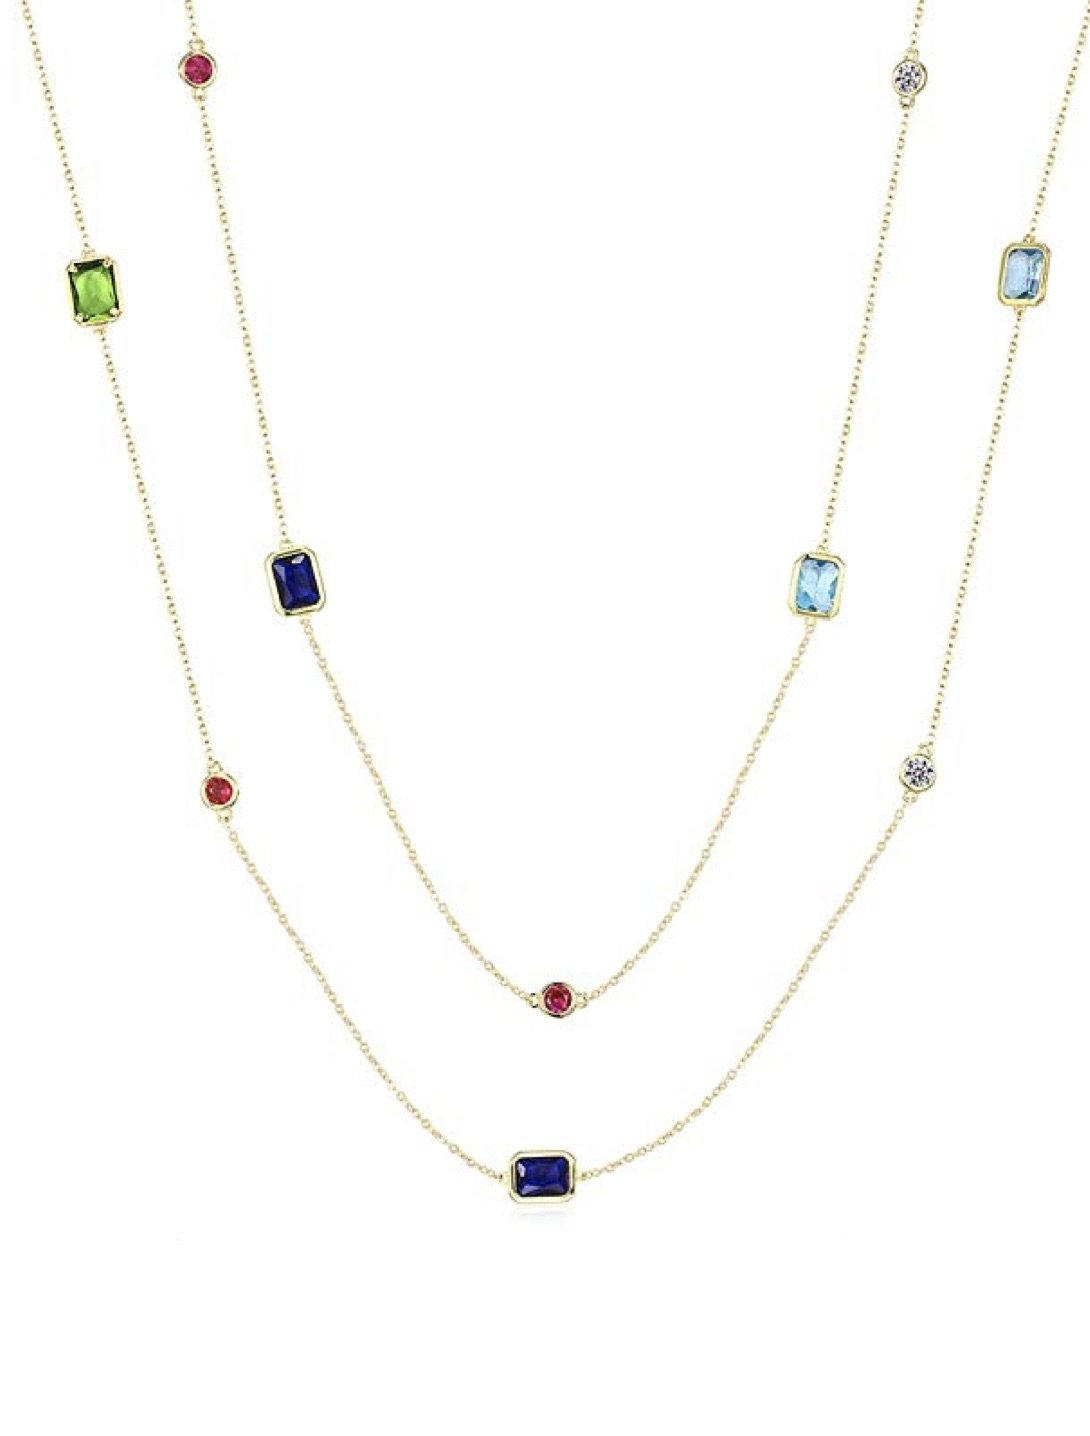 18K Gold Emerald Cut And Round Multi Color Long Necklace